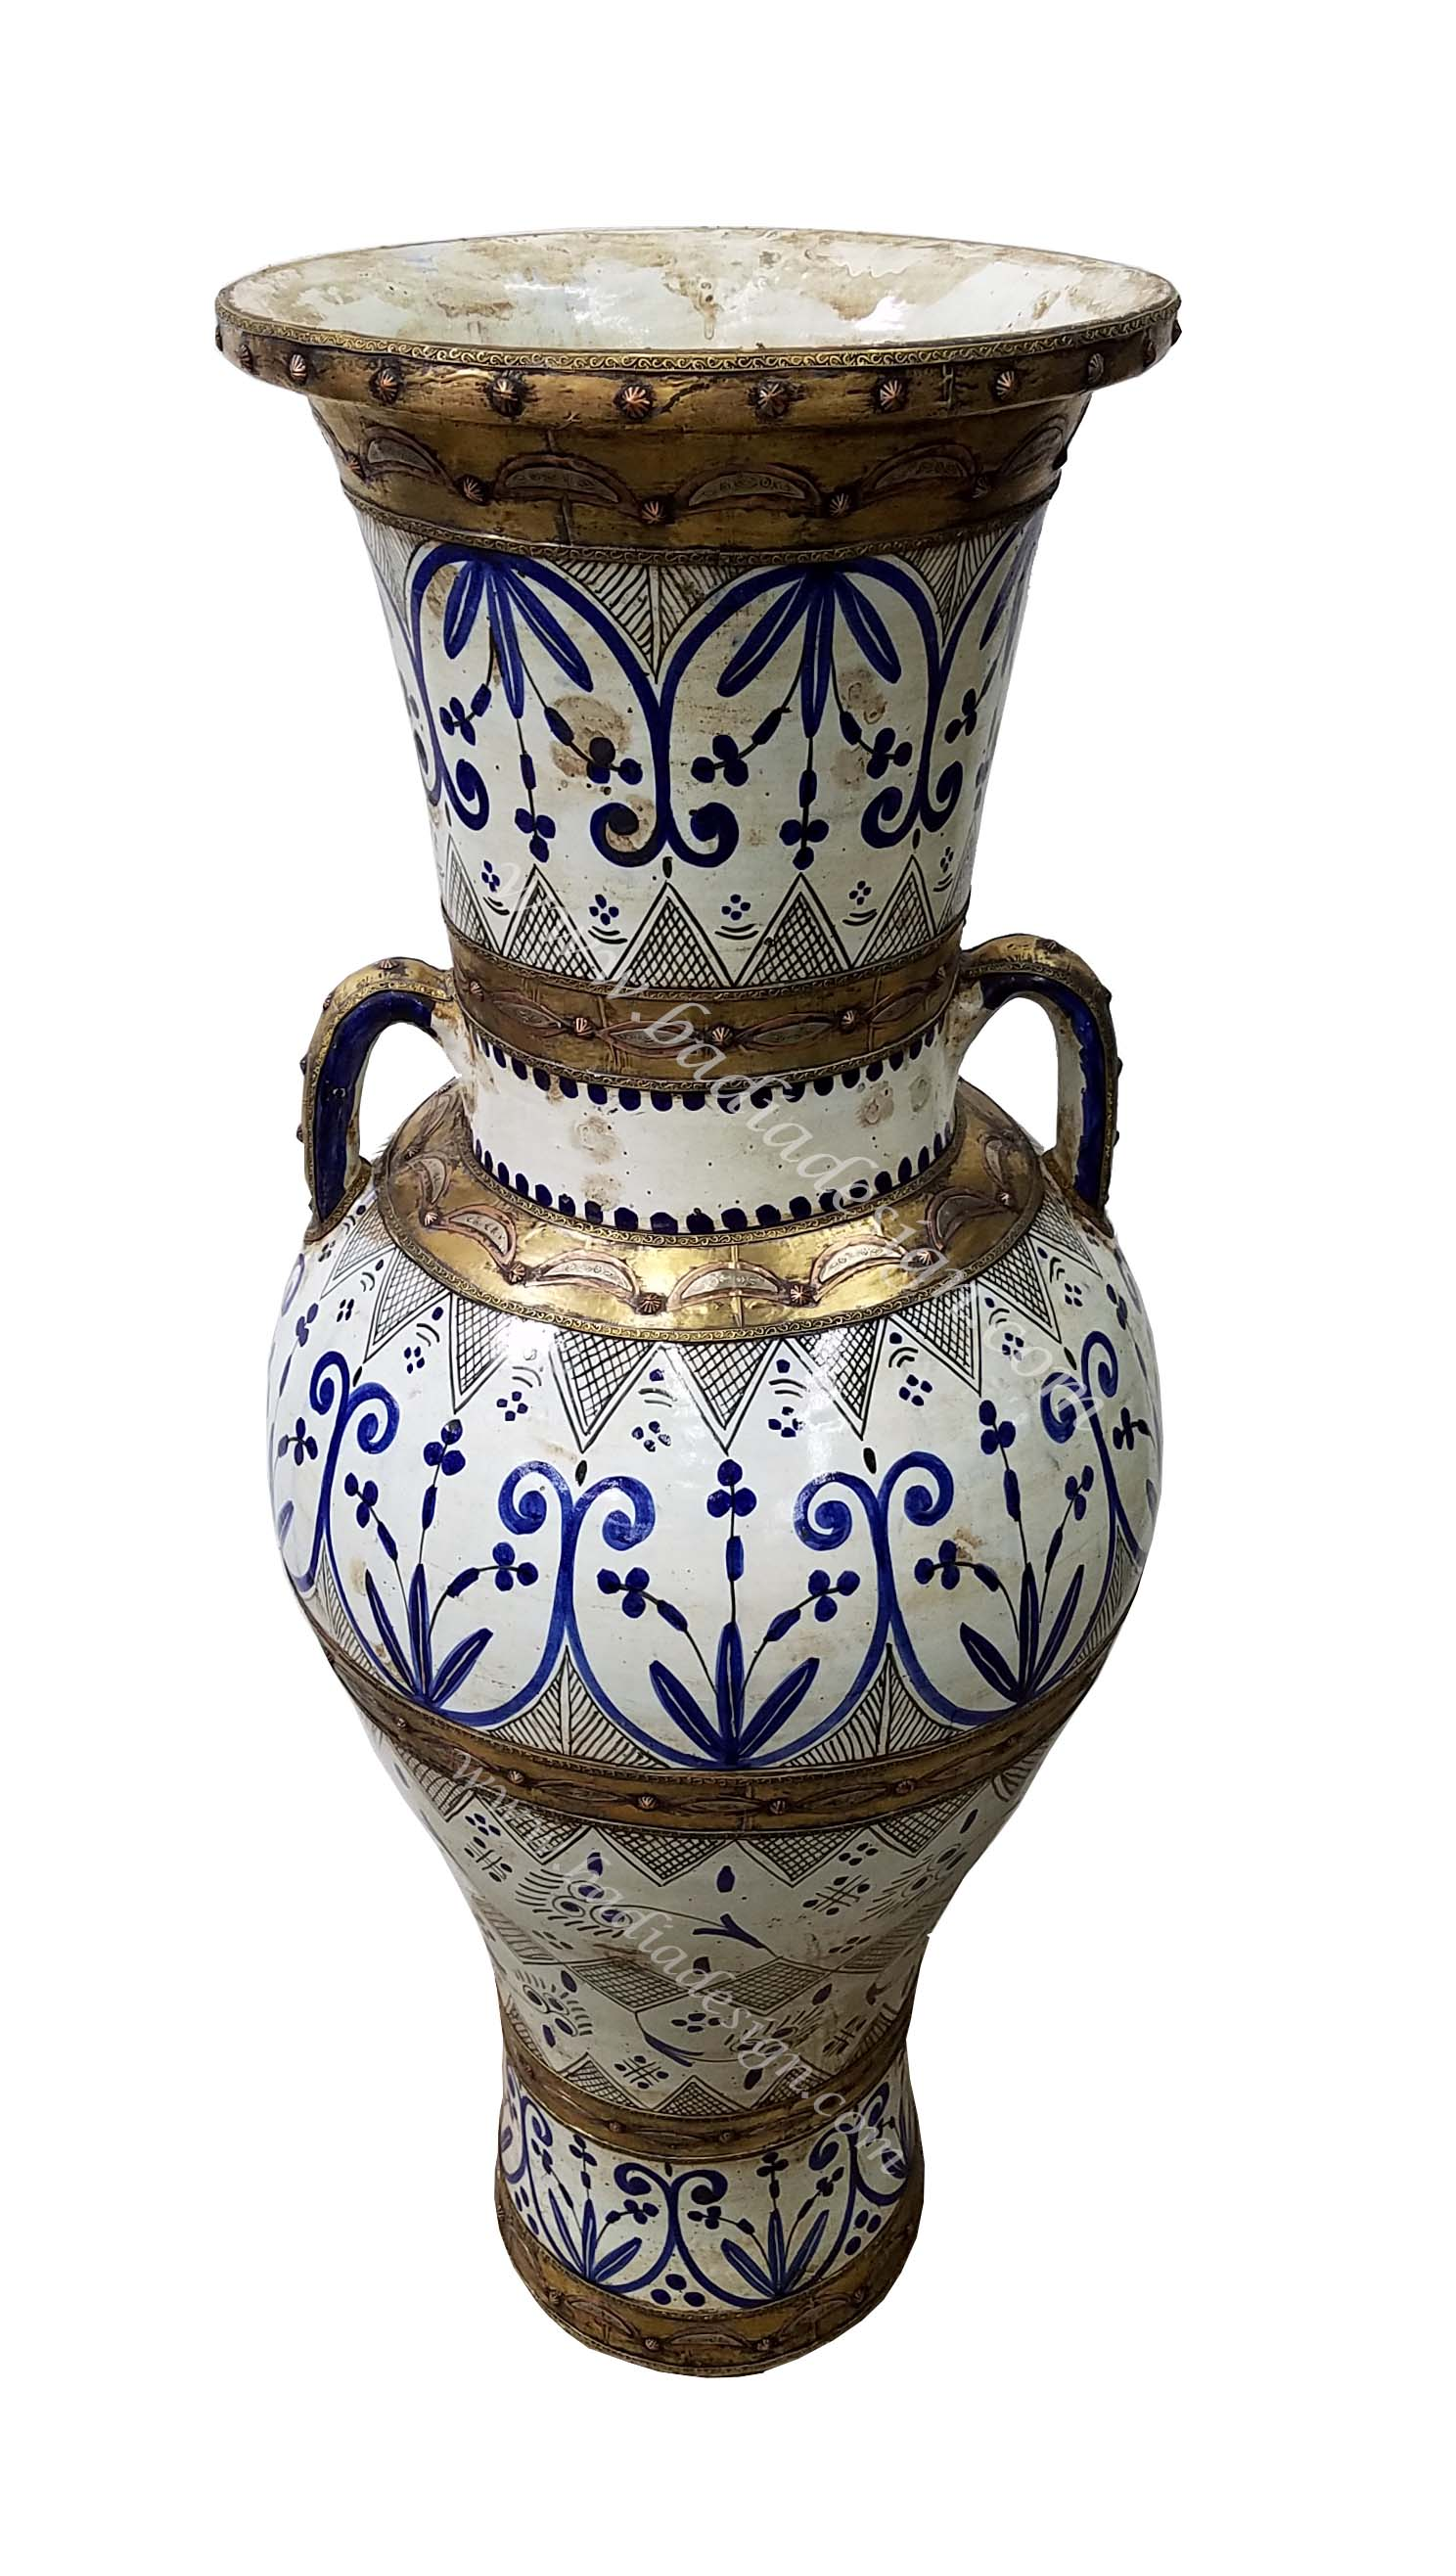 moroccan-blue-and-white-ceramic-urn-va066.jpg